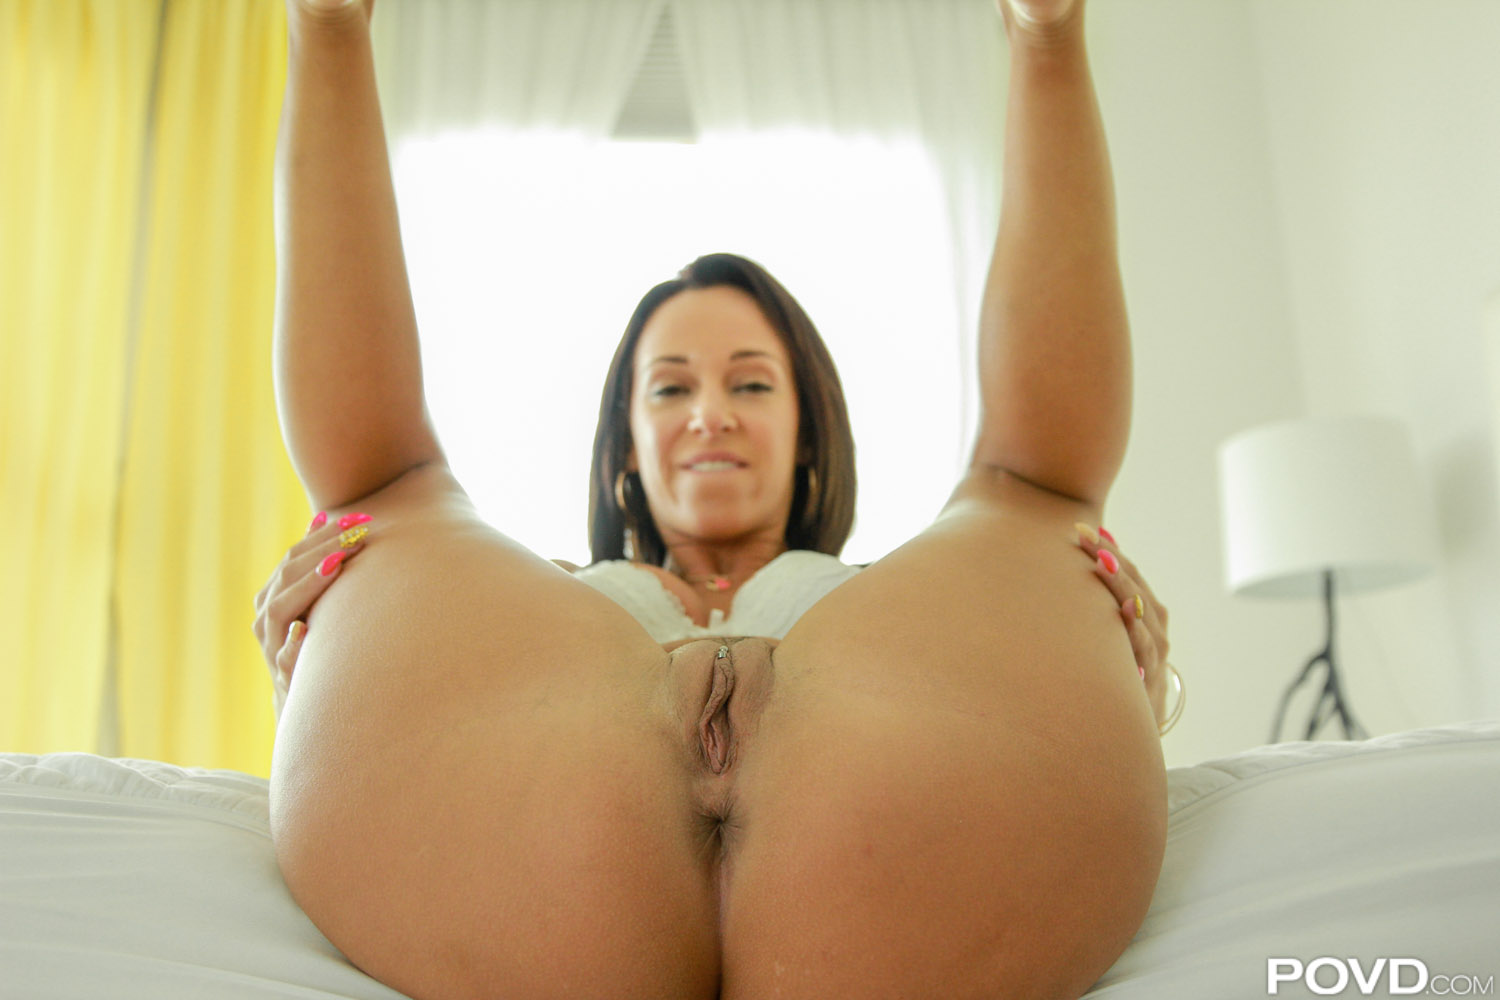 povd | hot phat ass white girl jada stevens gets fucked in pov